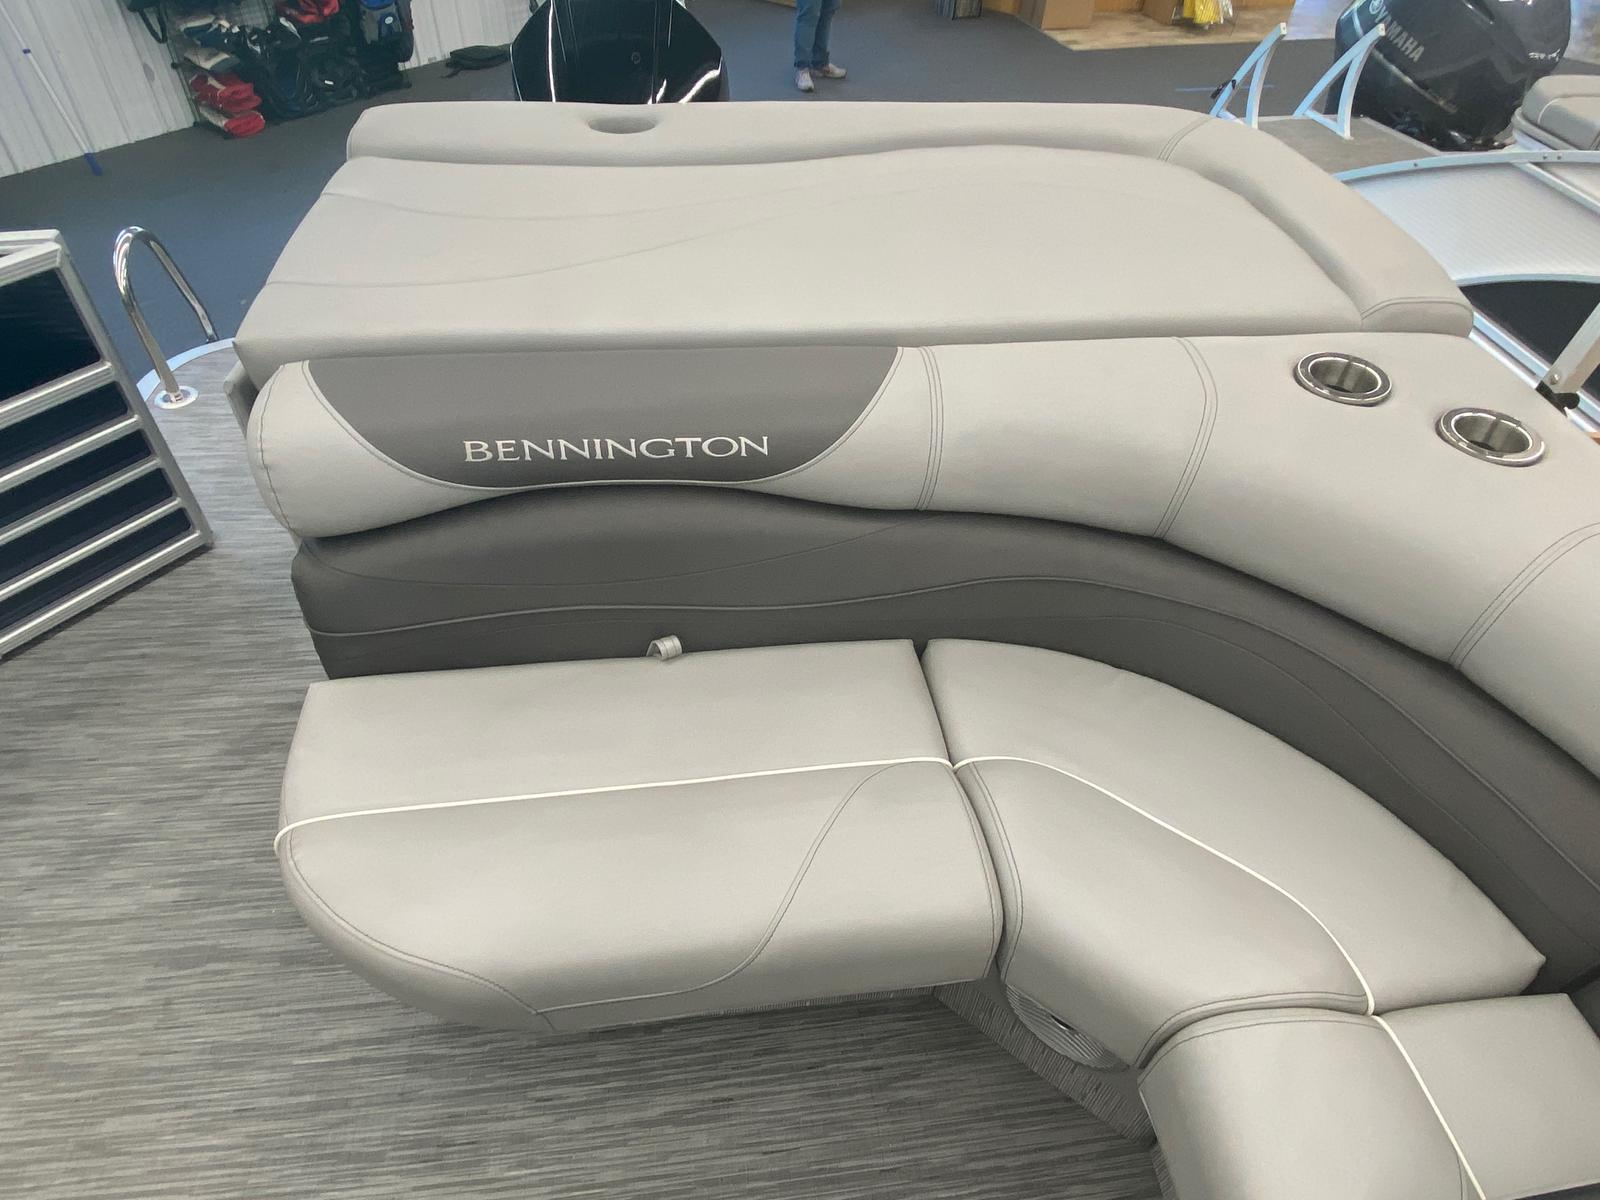 2021 Bennington boat for sale, model of the boat is 25 RL Tri-Toon ESP Performance Package & Image # 11 of 16